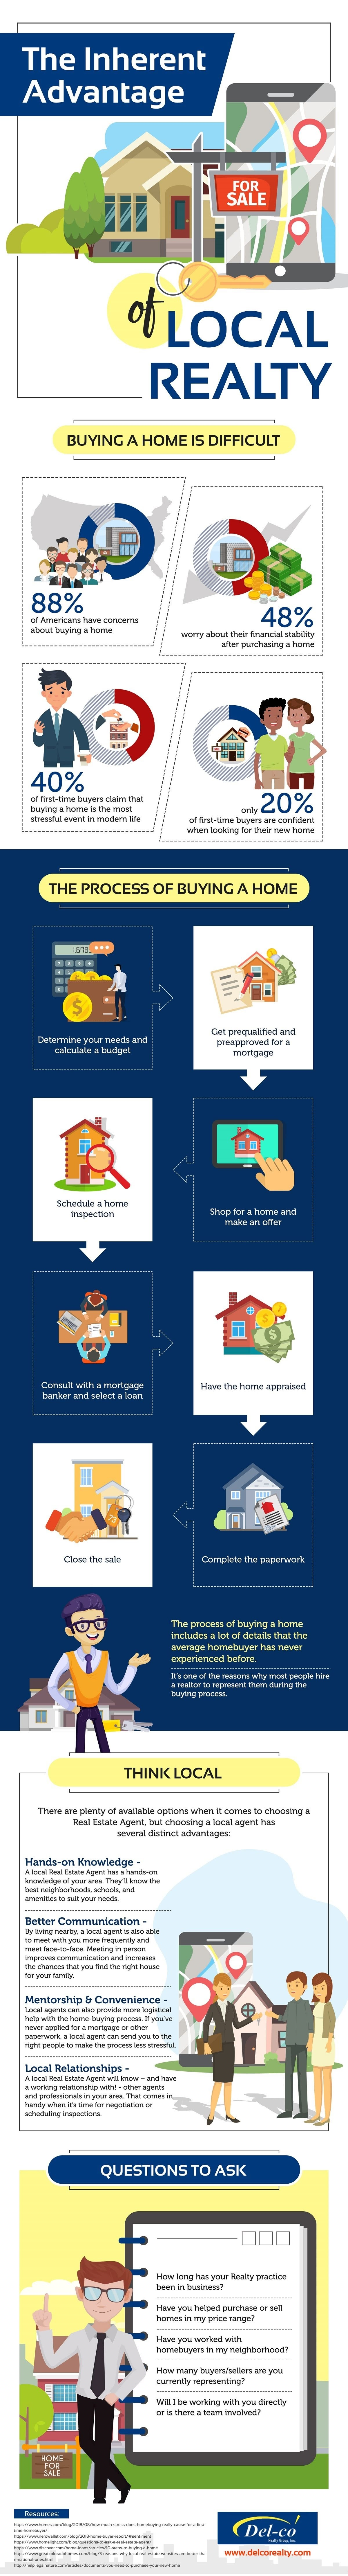 The Inherent Advantage of Local Realty #infographic